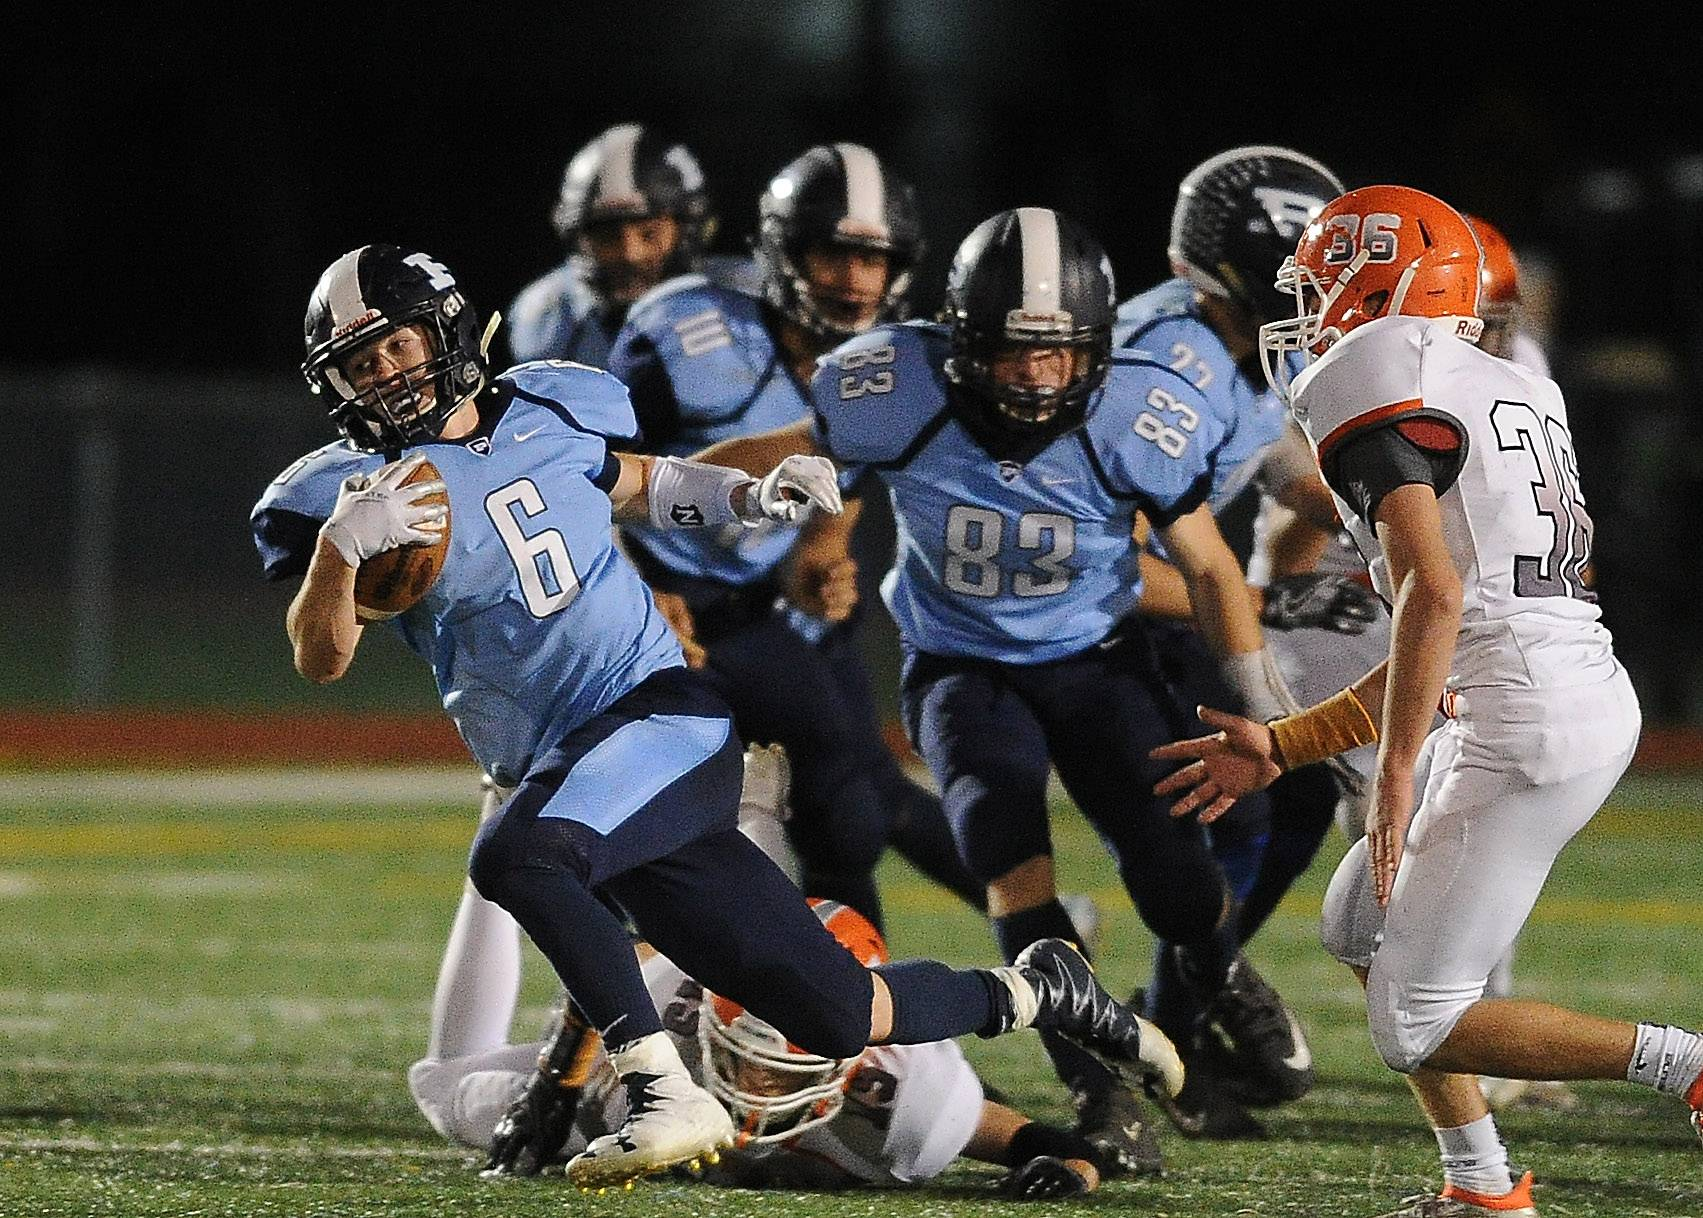 Prospect's Dante Cecala returns a punt but is tripped up by the Hersey defense on Friday at Prospect.